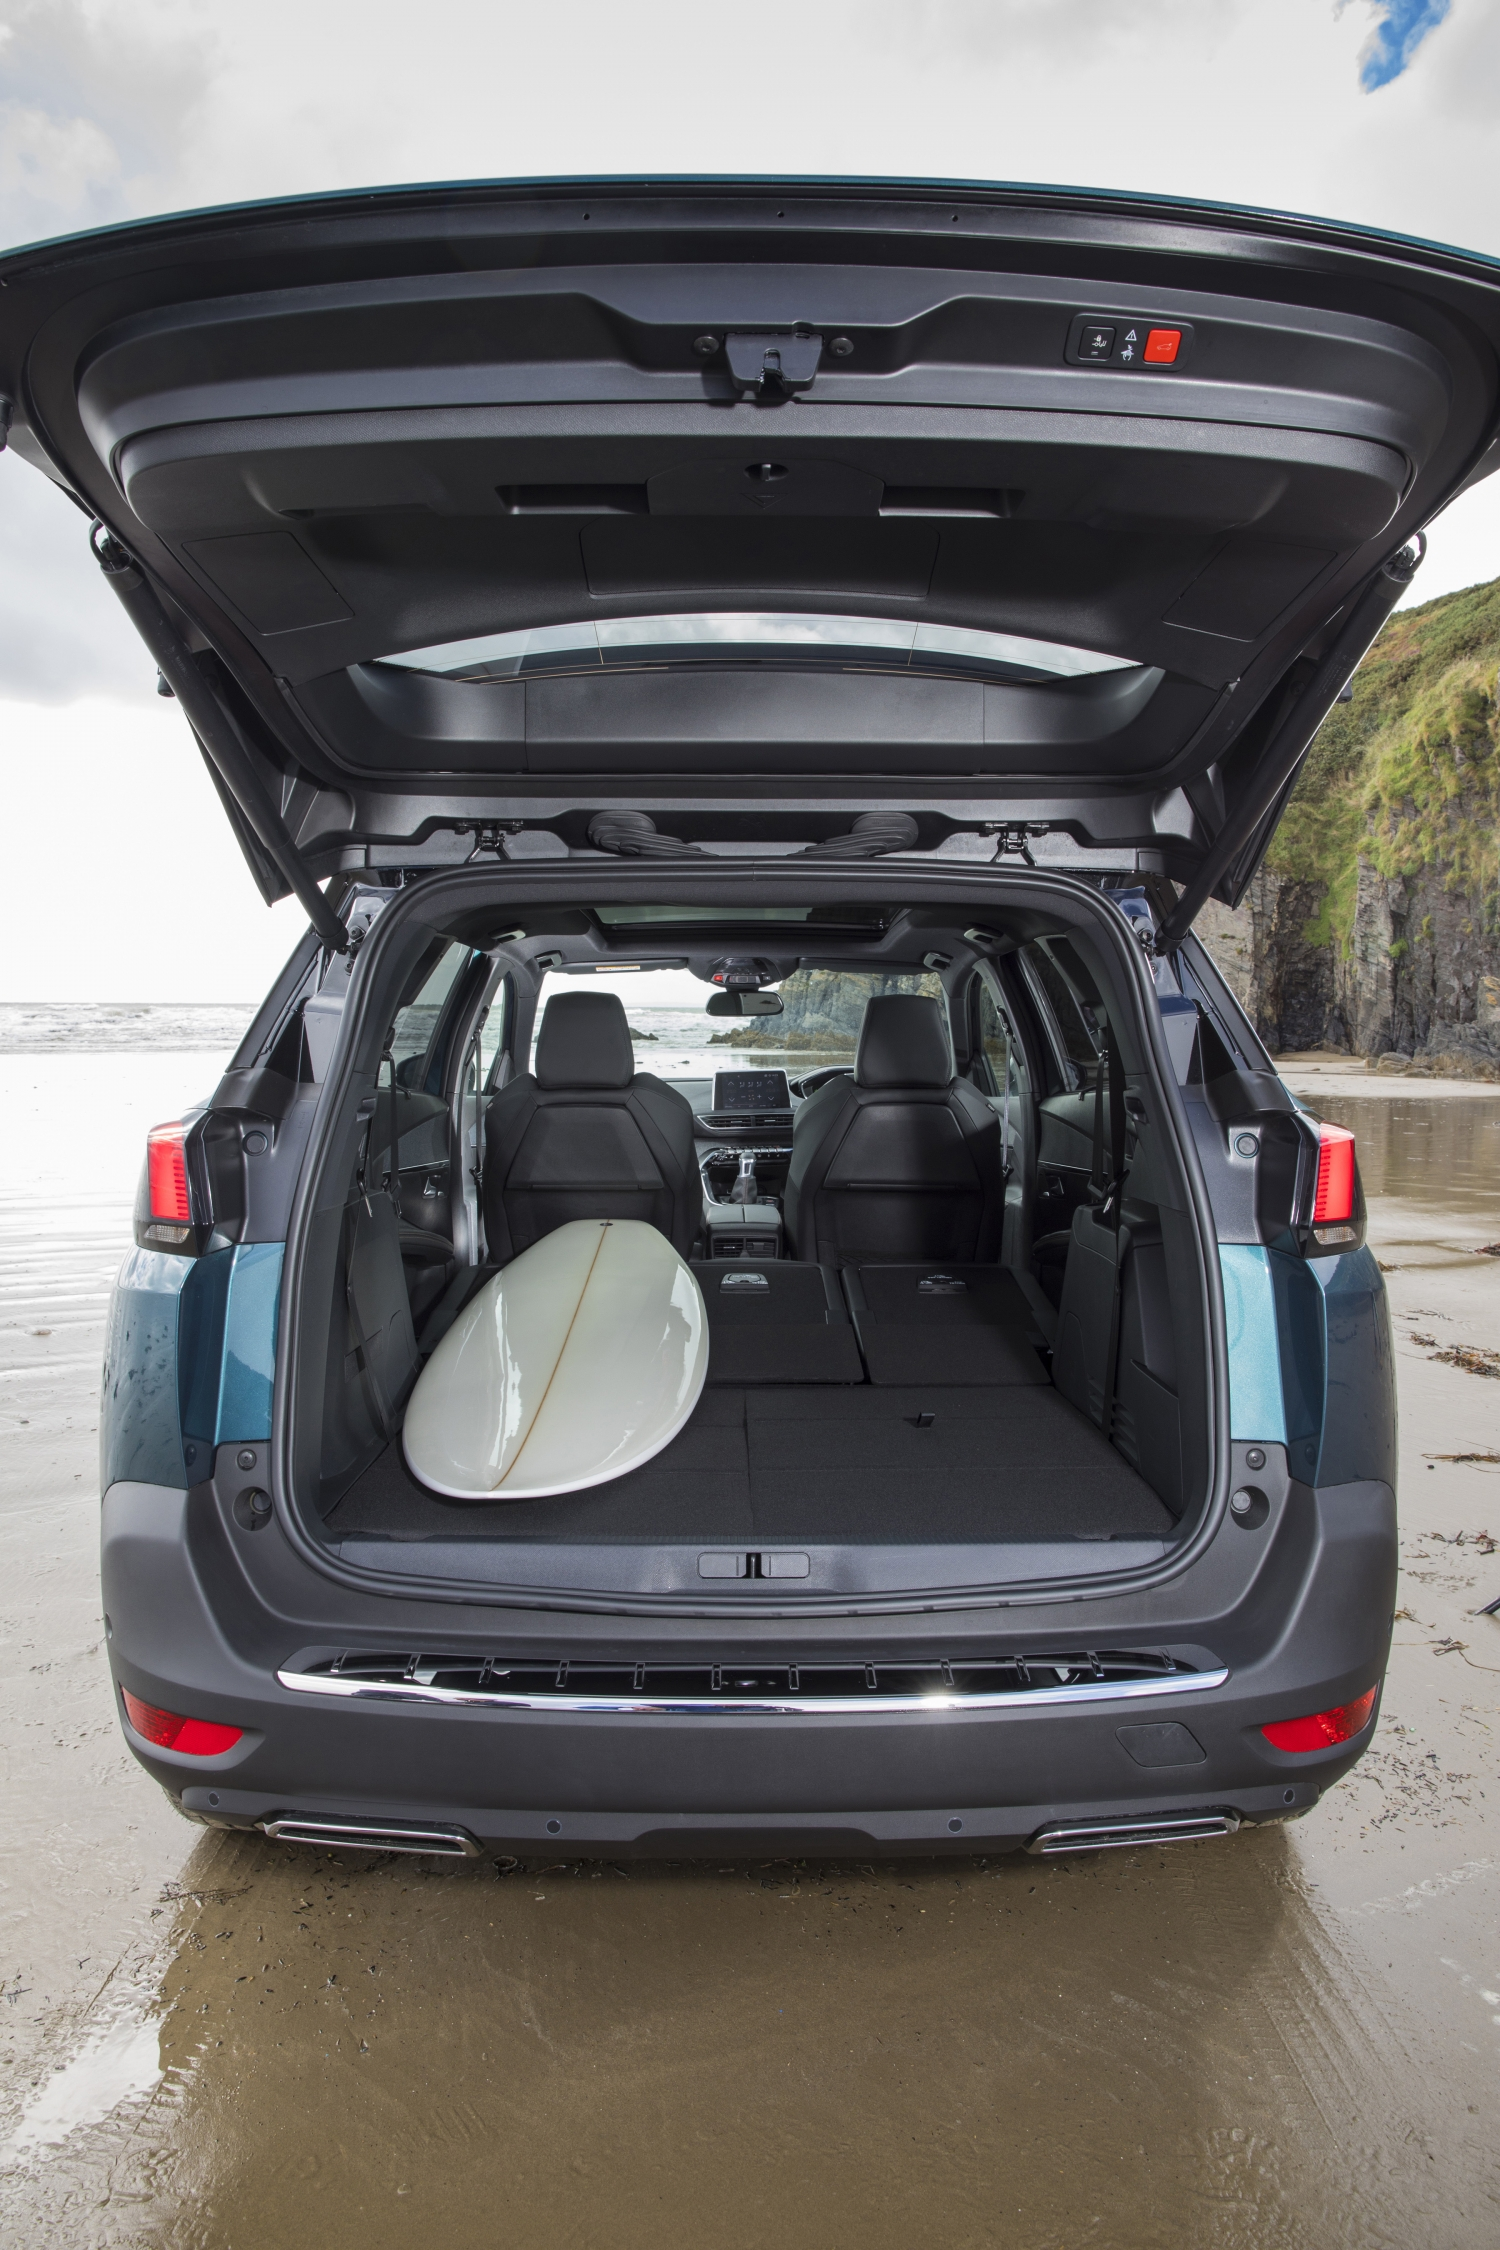 Peugeot 5008 with seats configured to fit a surfboard in